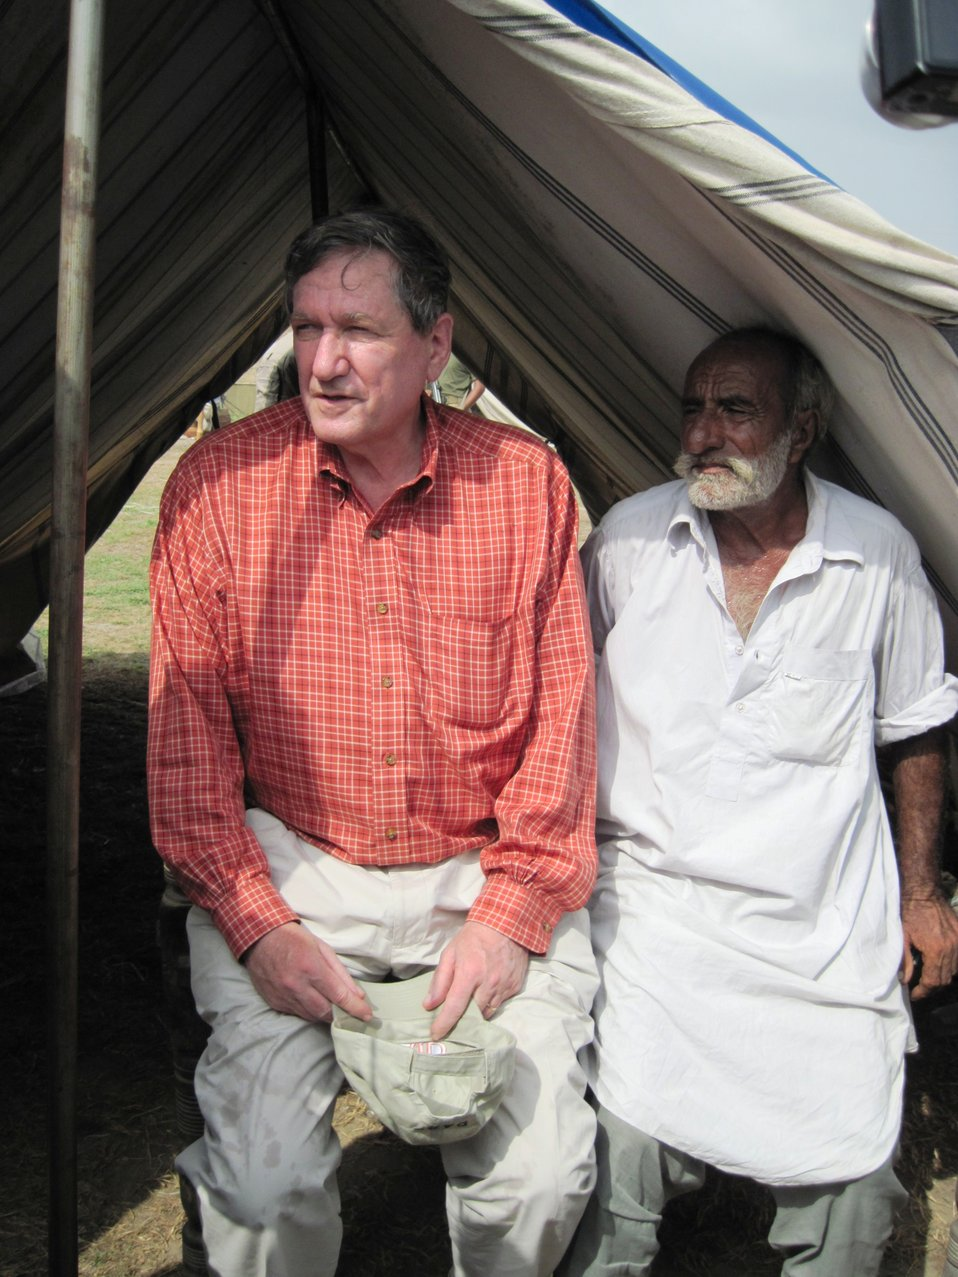 Special Representative Holbrooke Speaks With a Man From Sujuwal